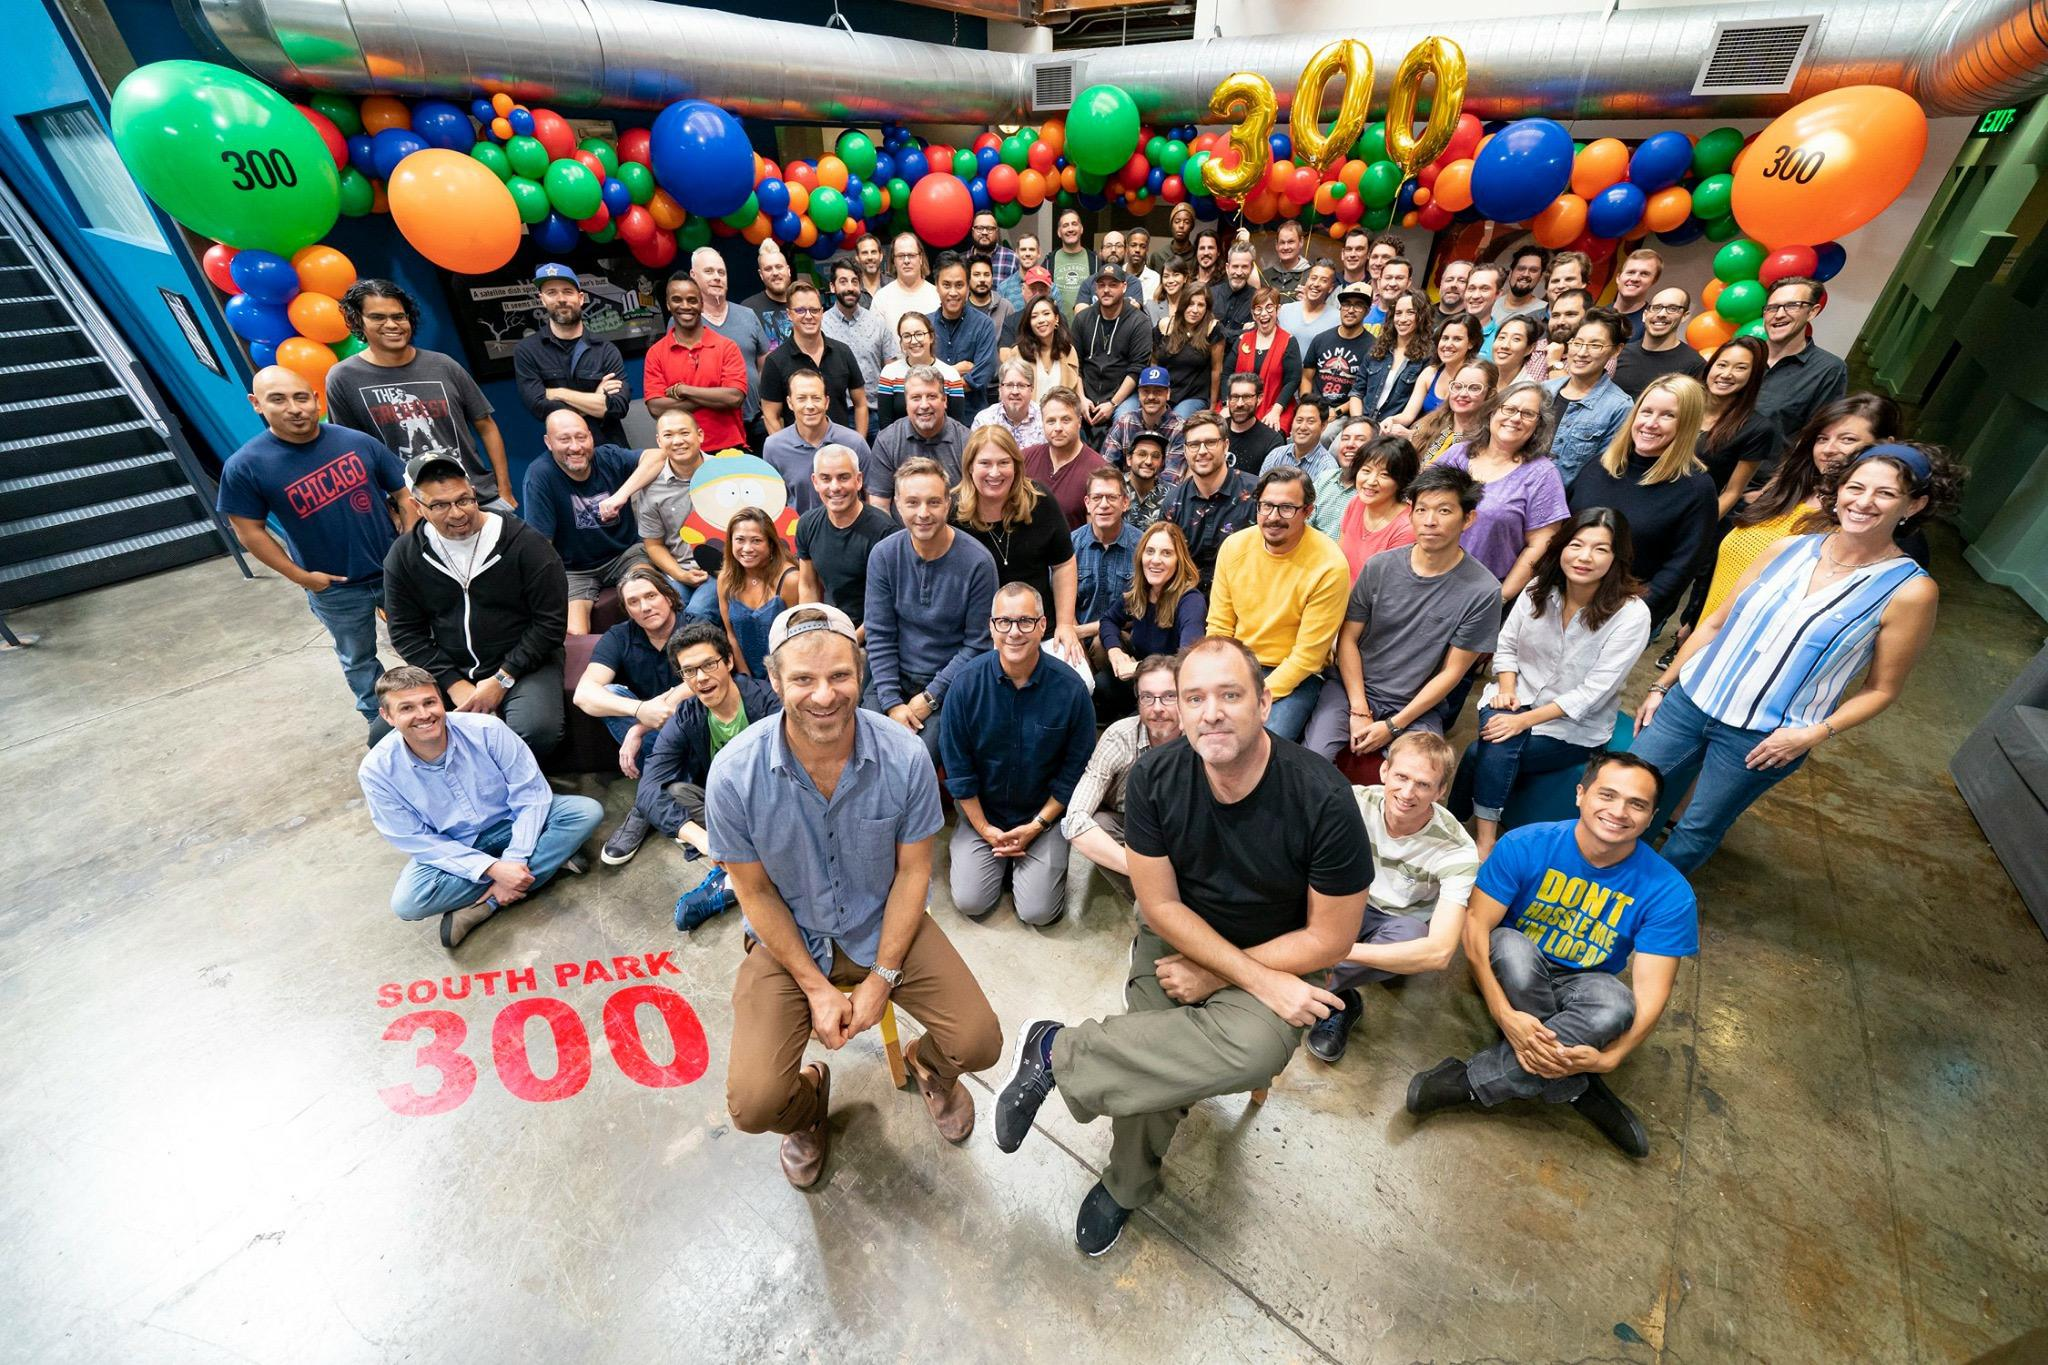 The entire crew behind South Park celebrating their 300th episode